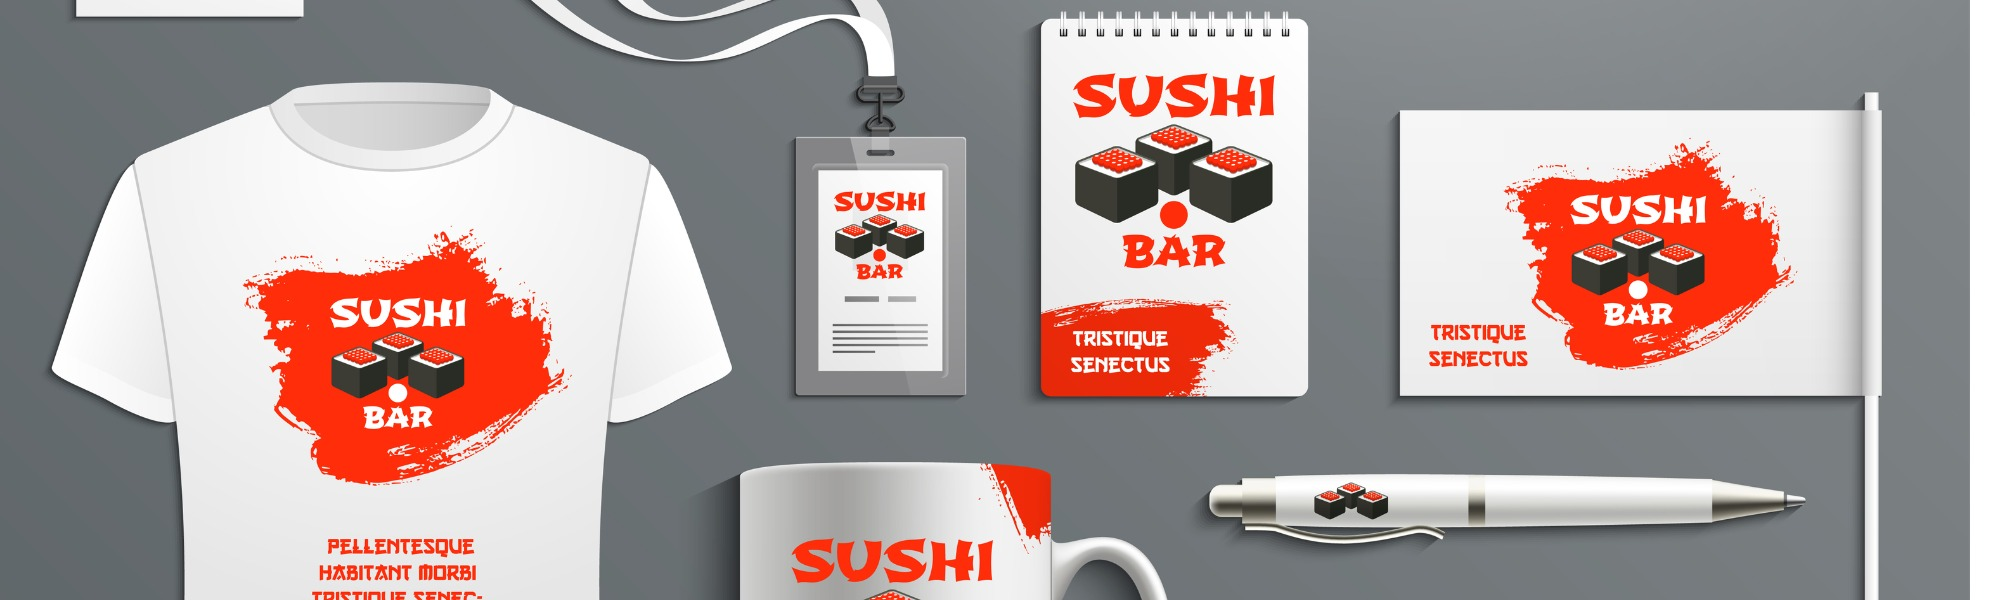 promotional products with logo to market business